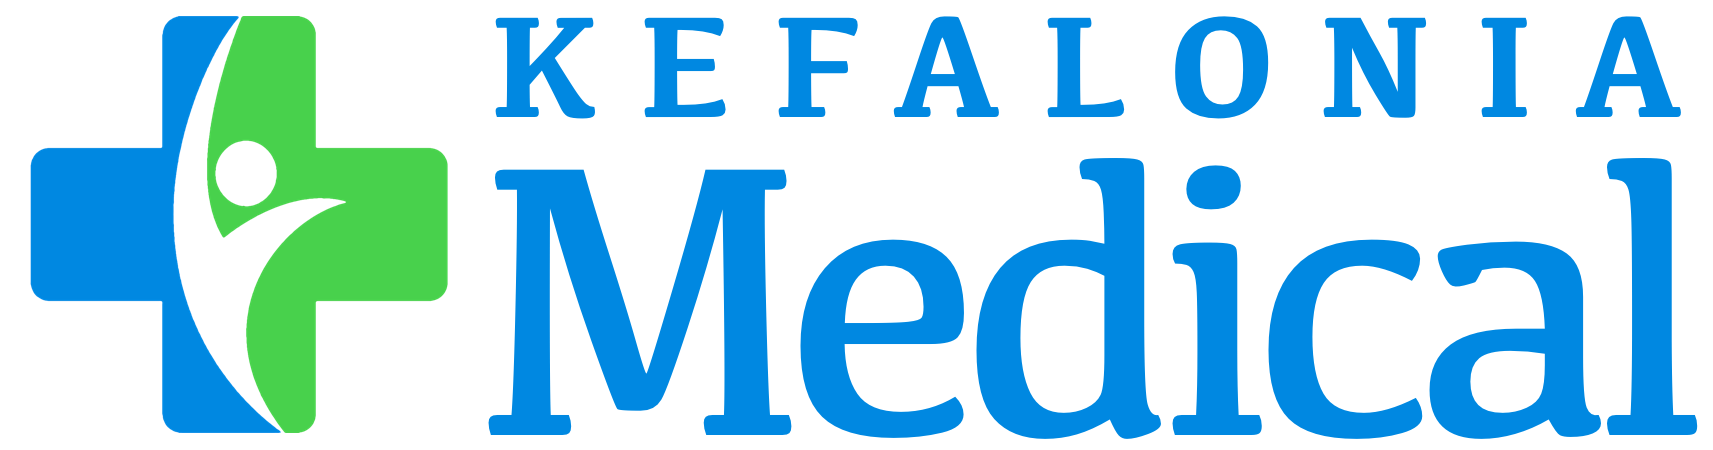 Kefalonia Medical Practice